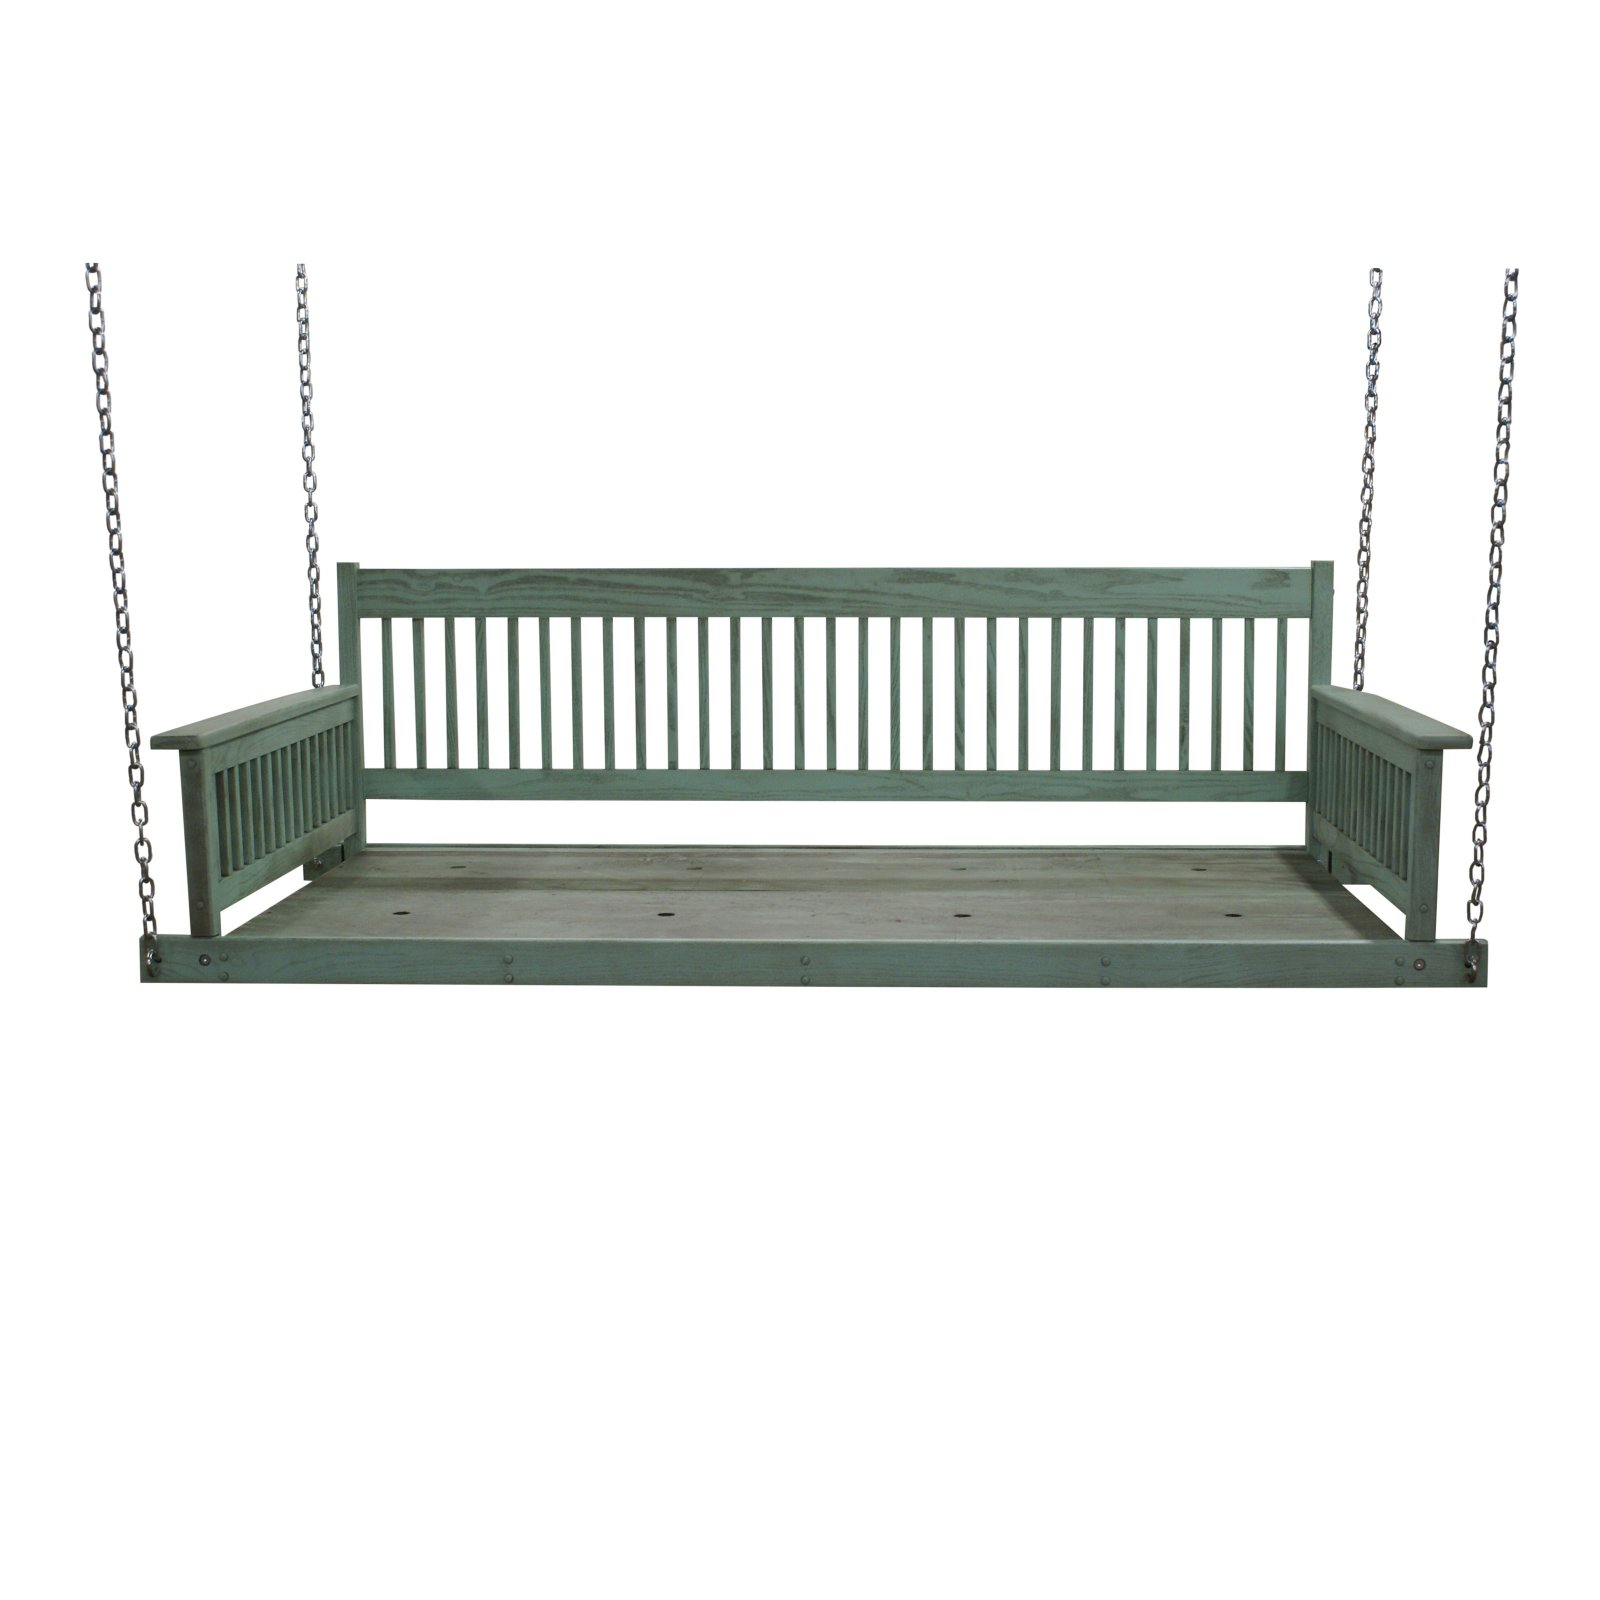 Hinkle Plantation 856 Wood Patio Day Bed Swing